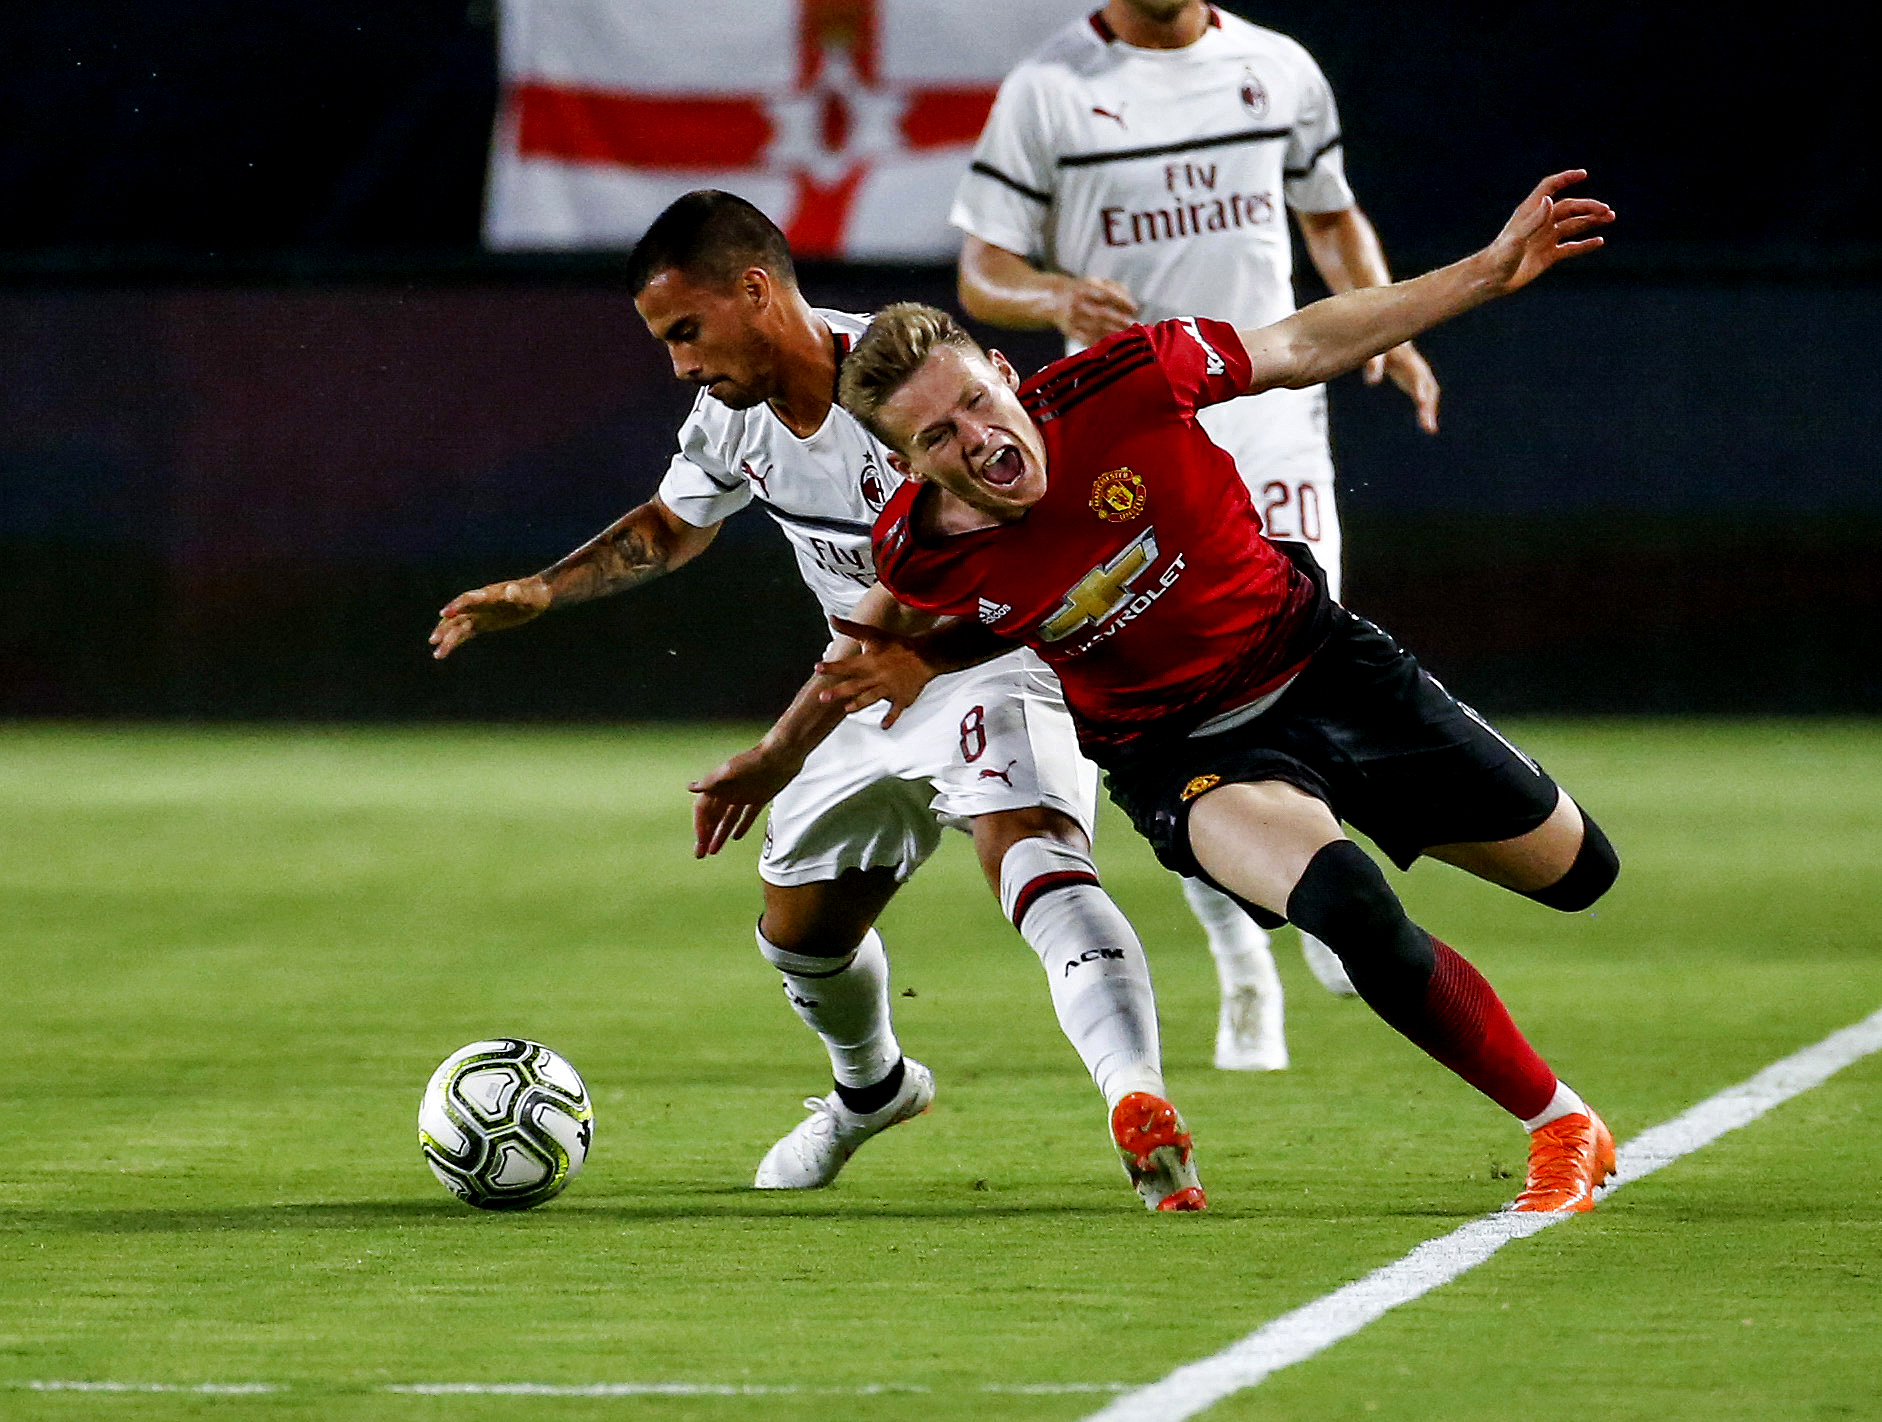 AC Milan's forward Suso (L) vies with Manchester United's midfielder Scott McTominay during the International Champions Cup match on July 25, 2018 in Carson, California, the United States. Manchester United won 9-8 in a penalty shootout.